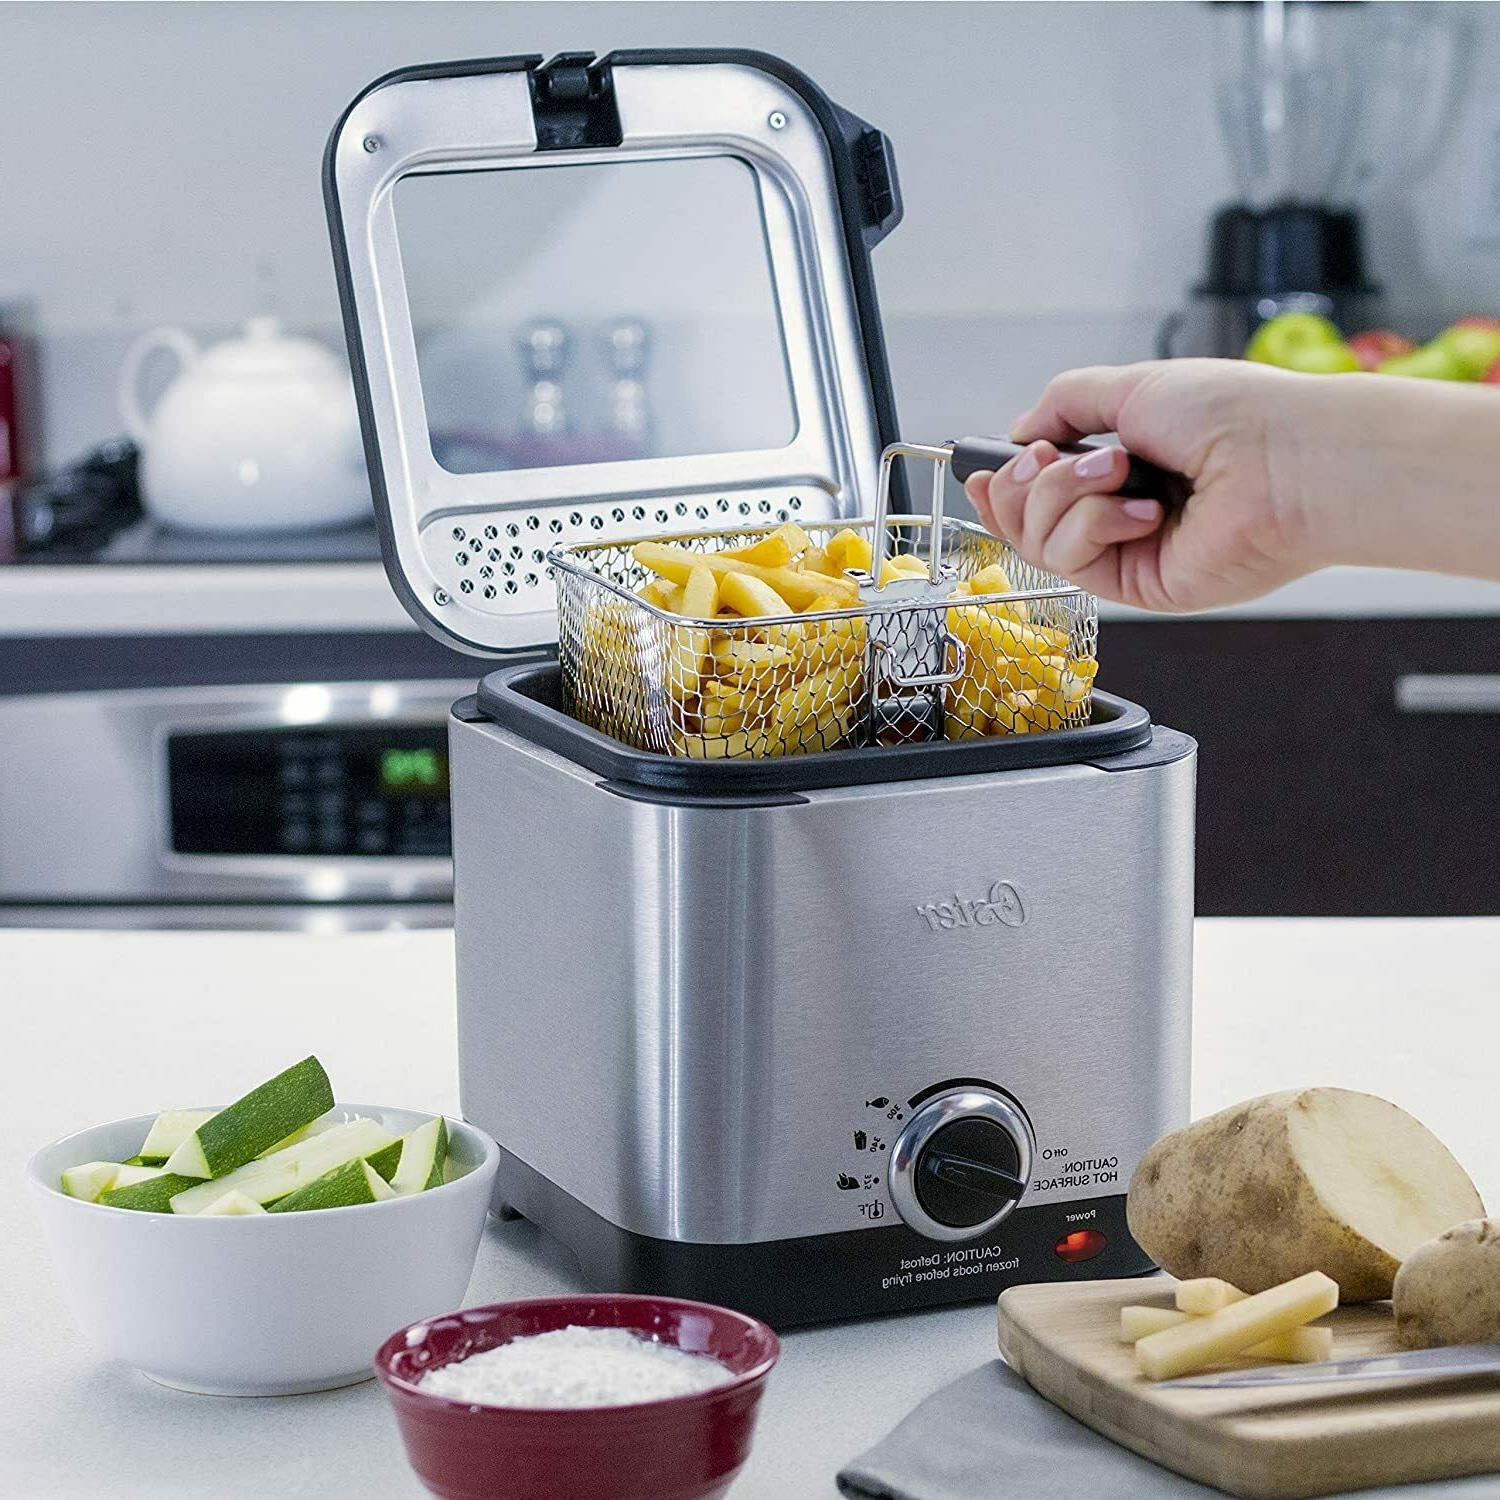 SALE OFF Compact Style Stainless Fryer Stainless Steel